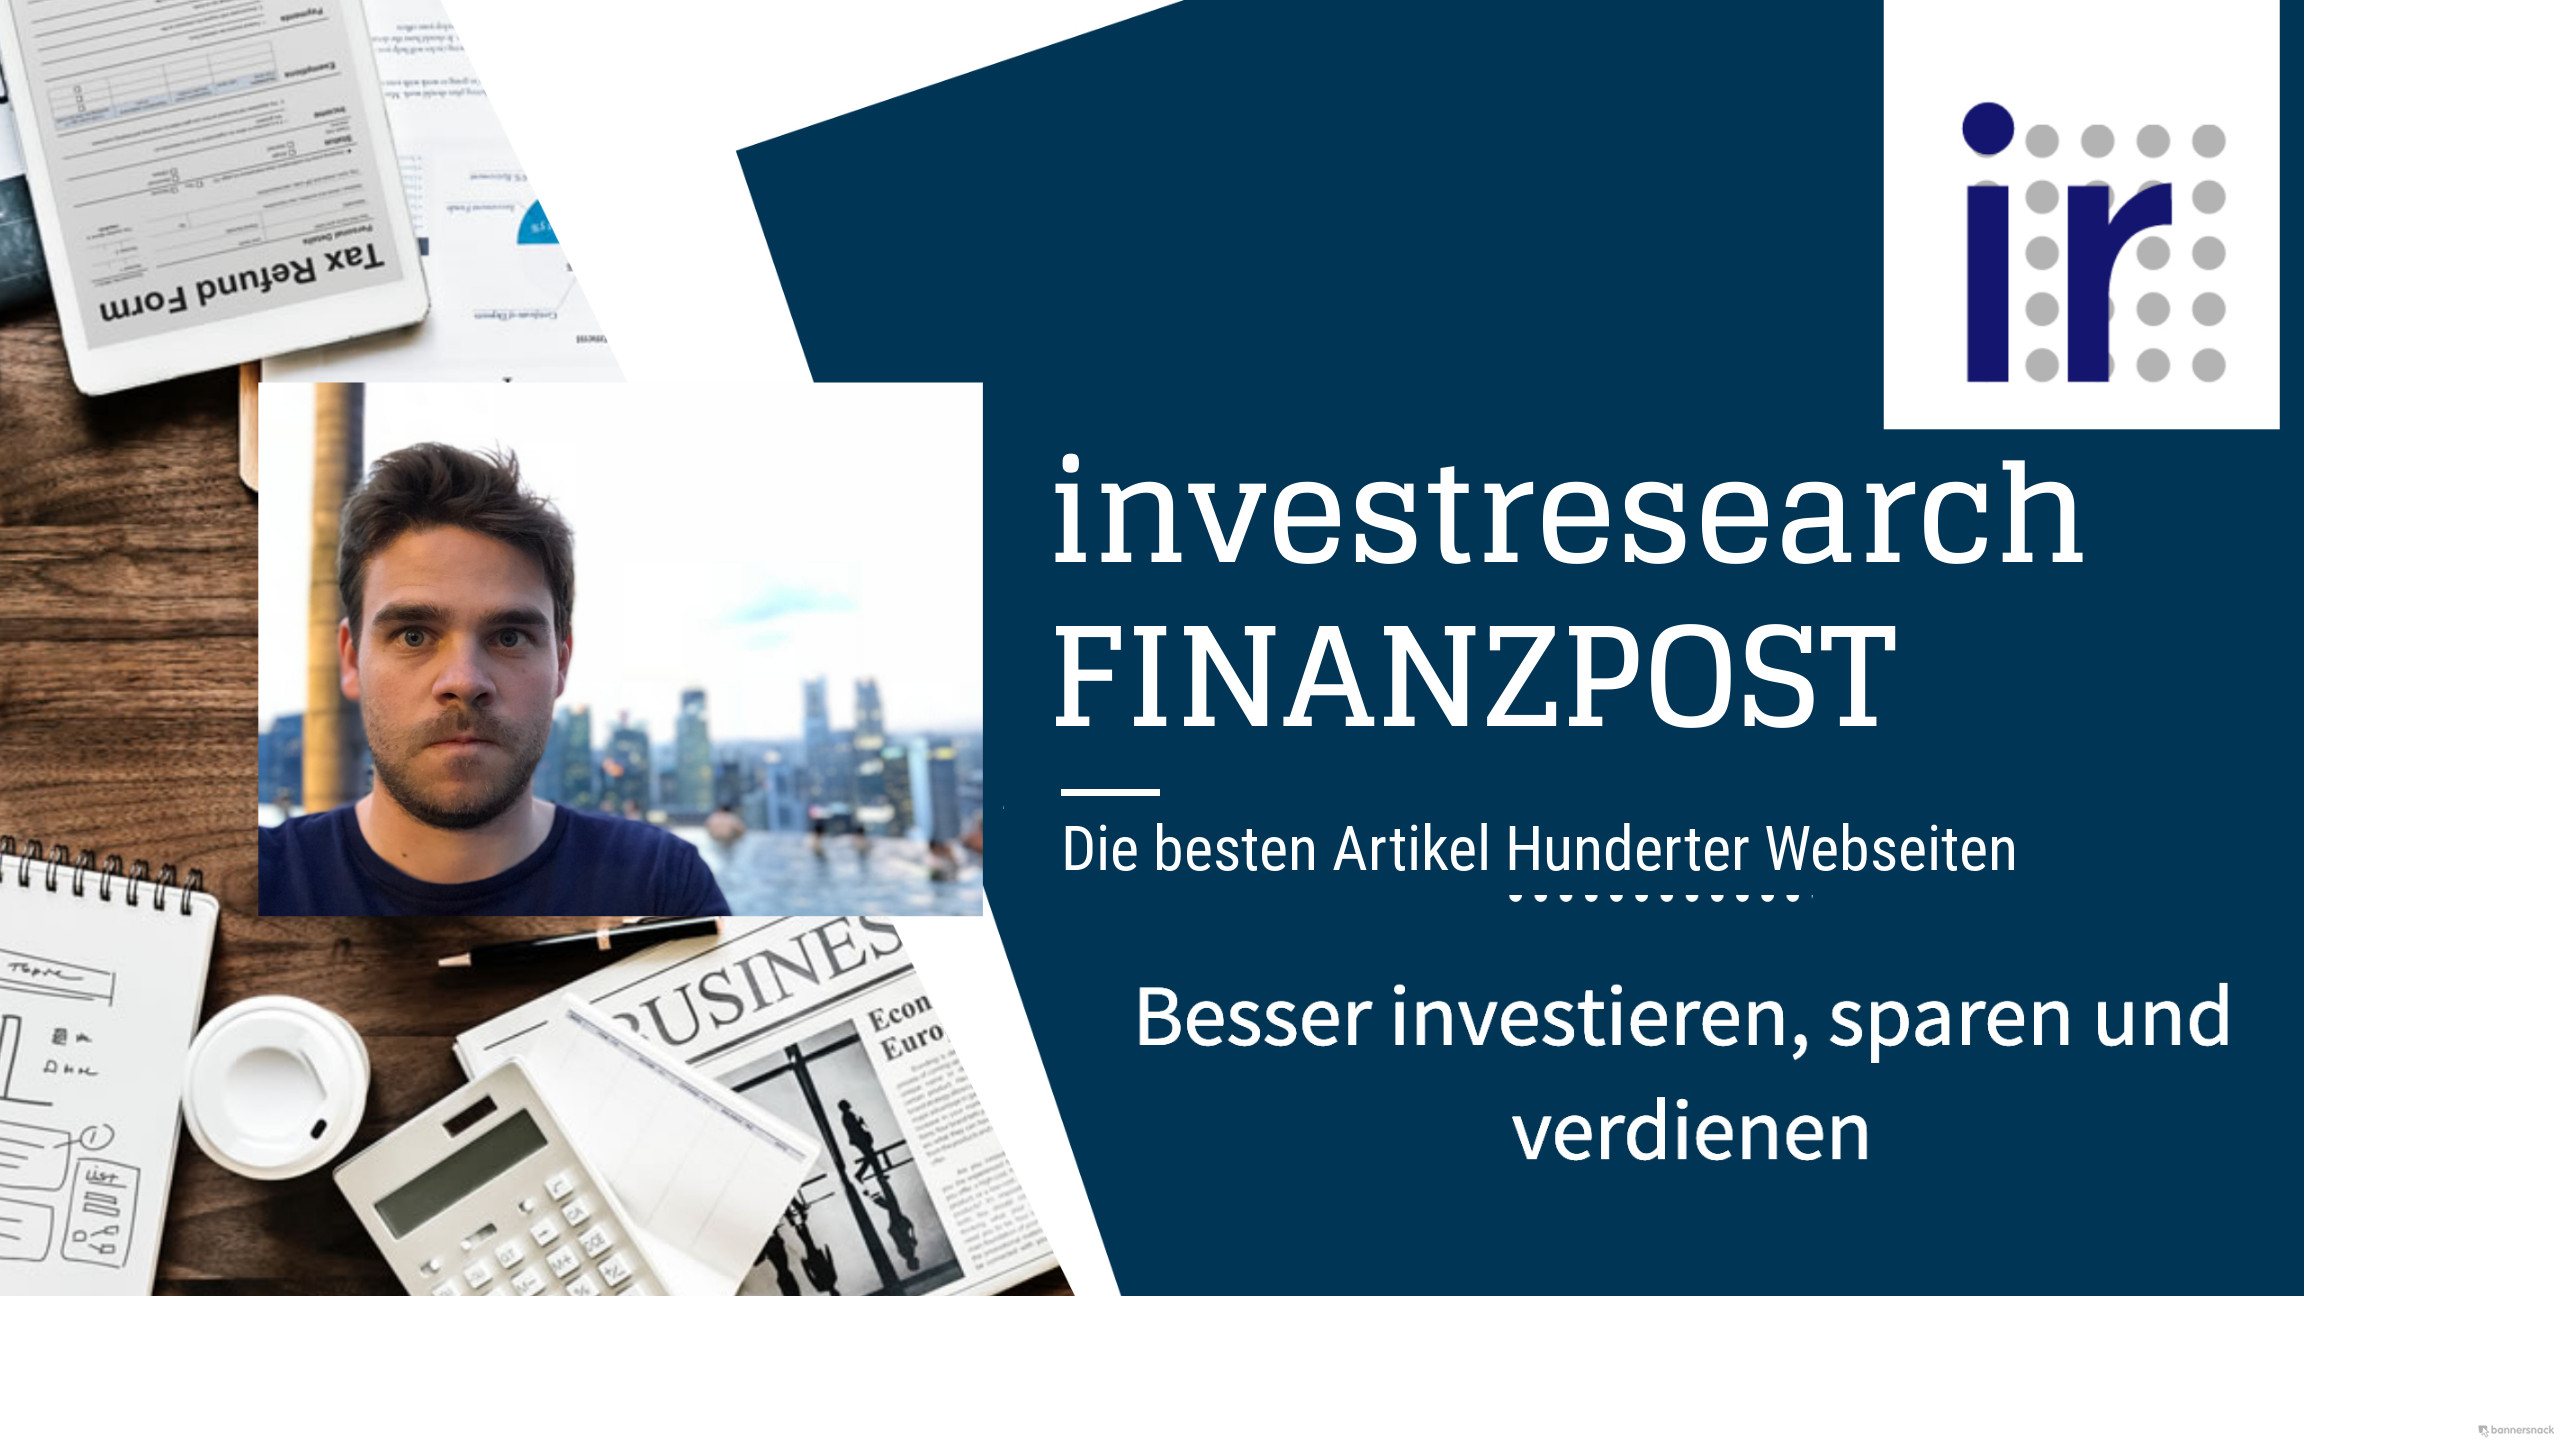 Investresearch